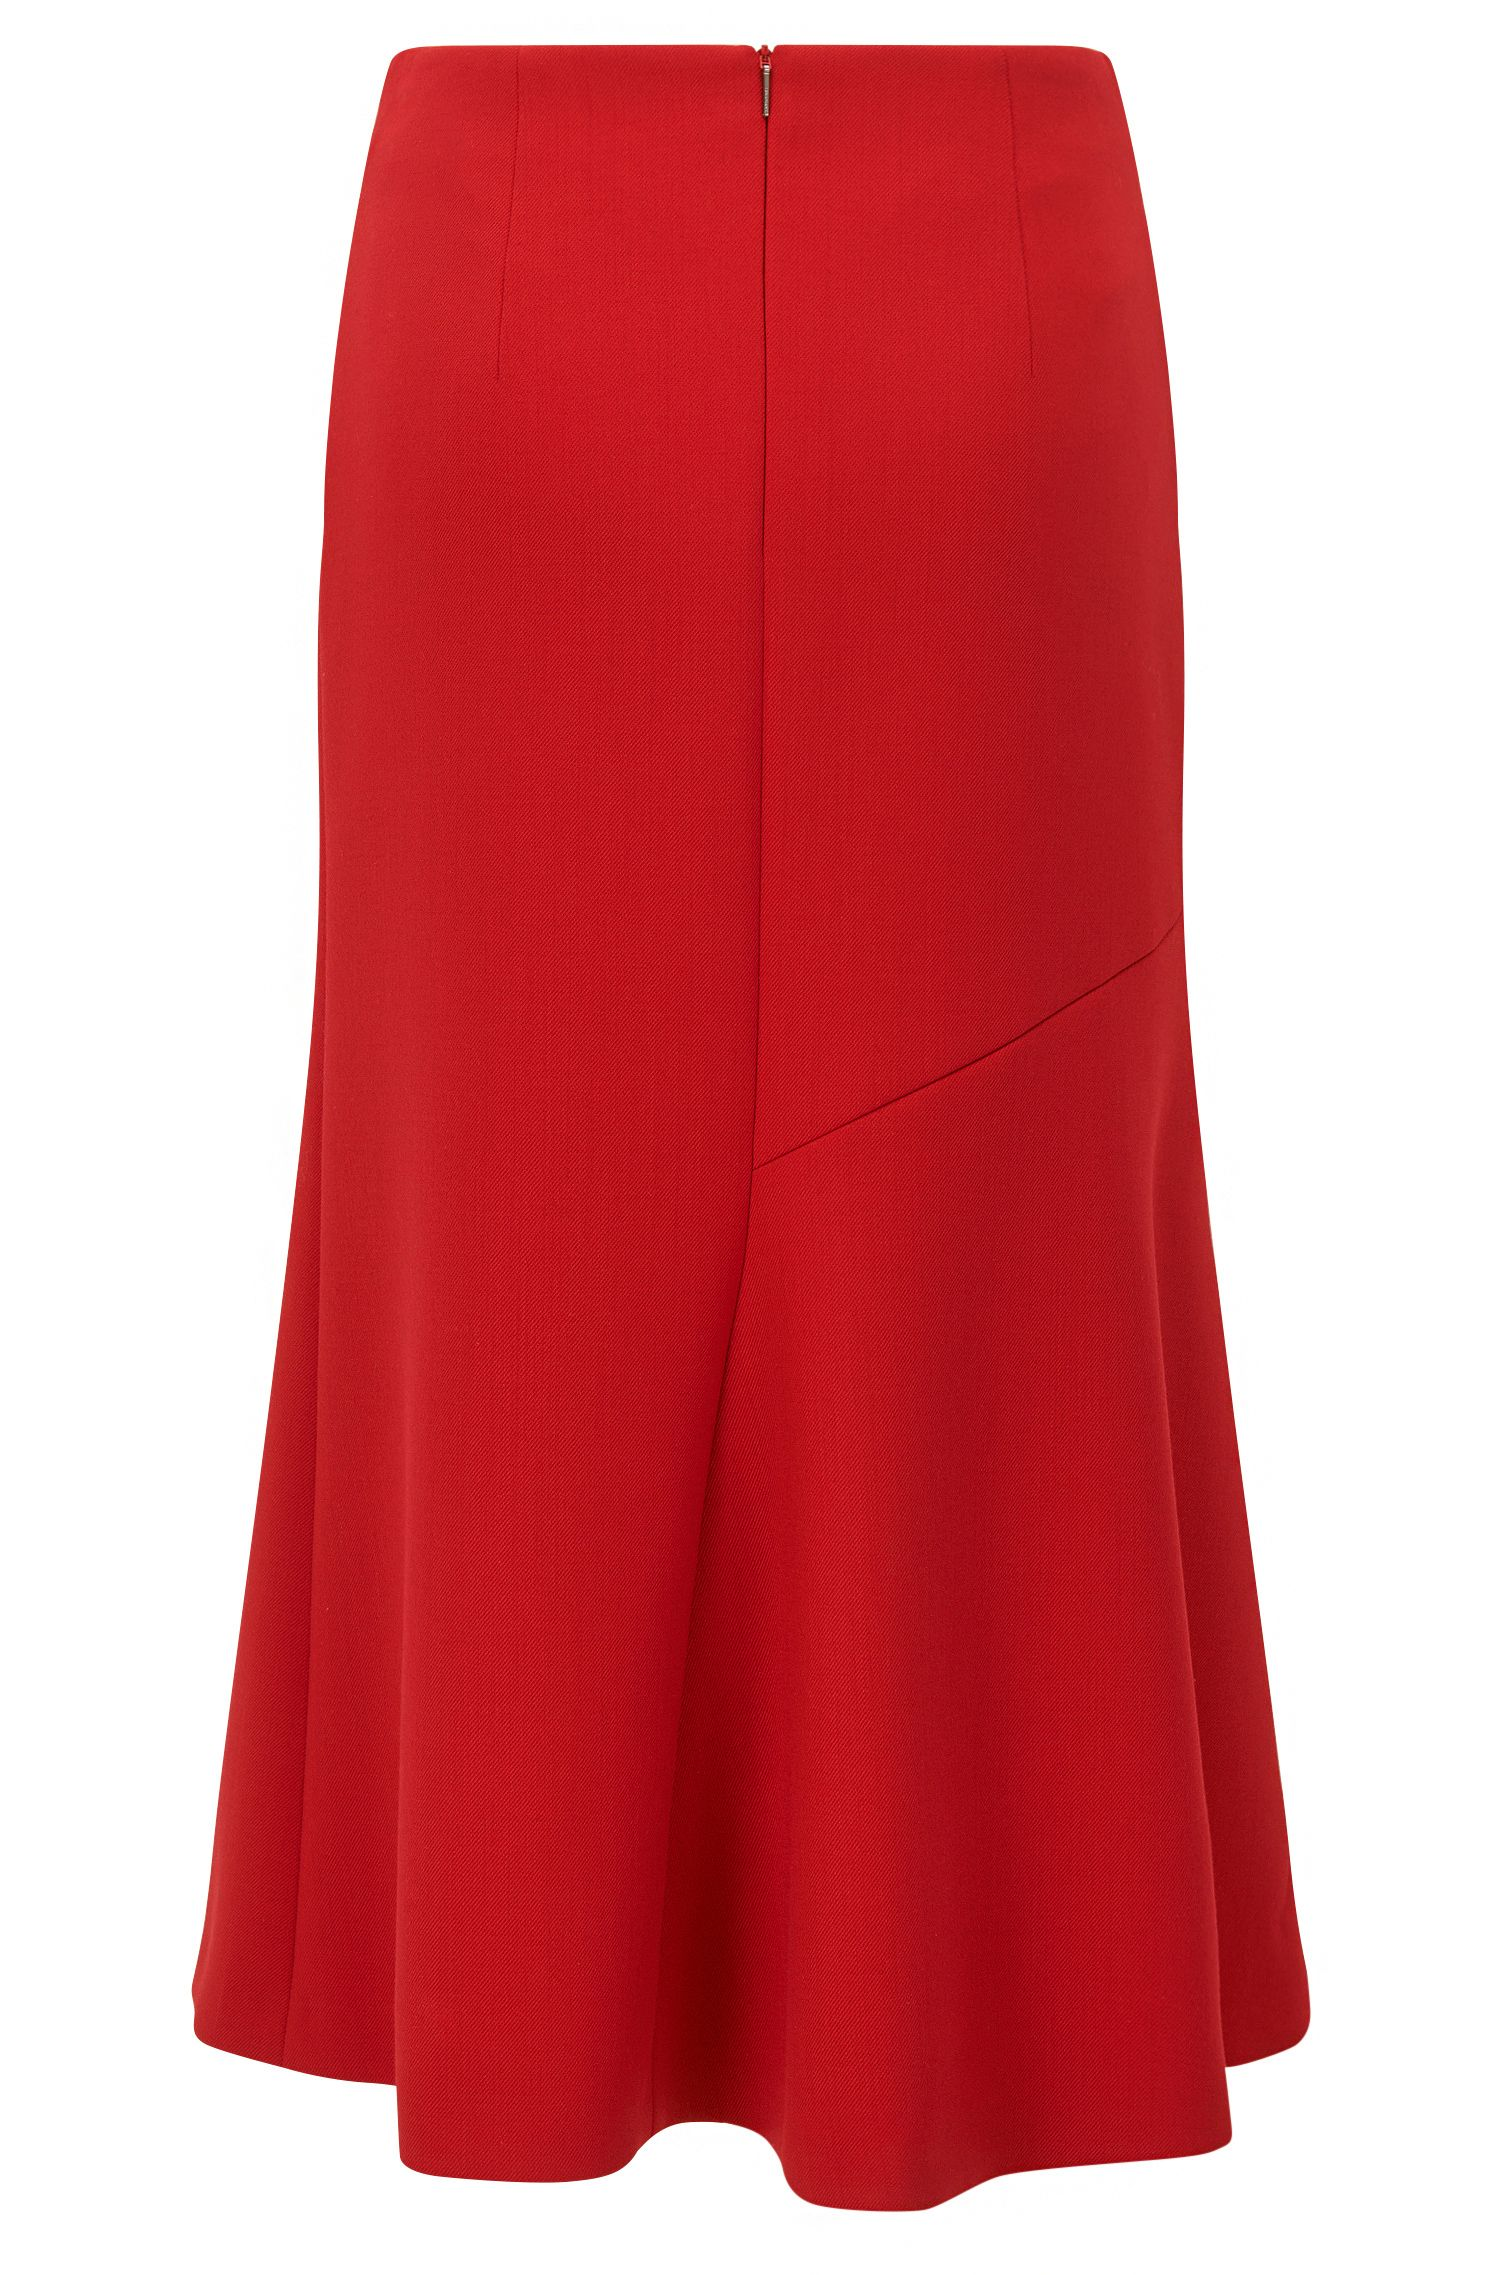 Midi-length skirt in fluid twill